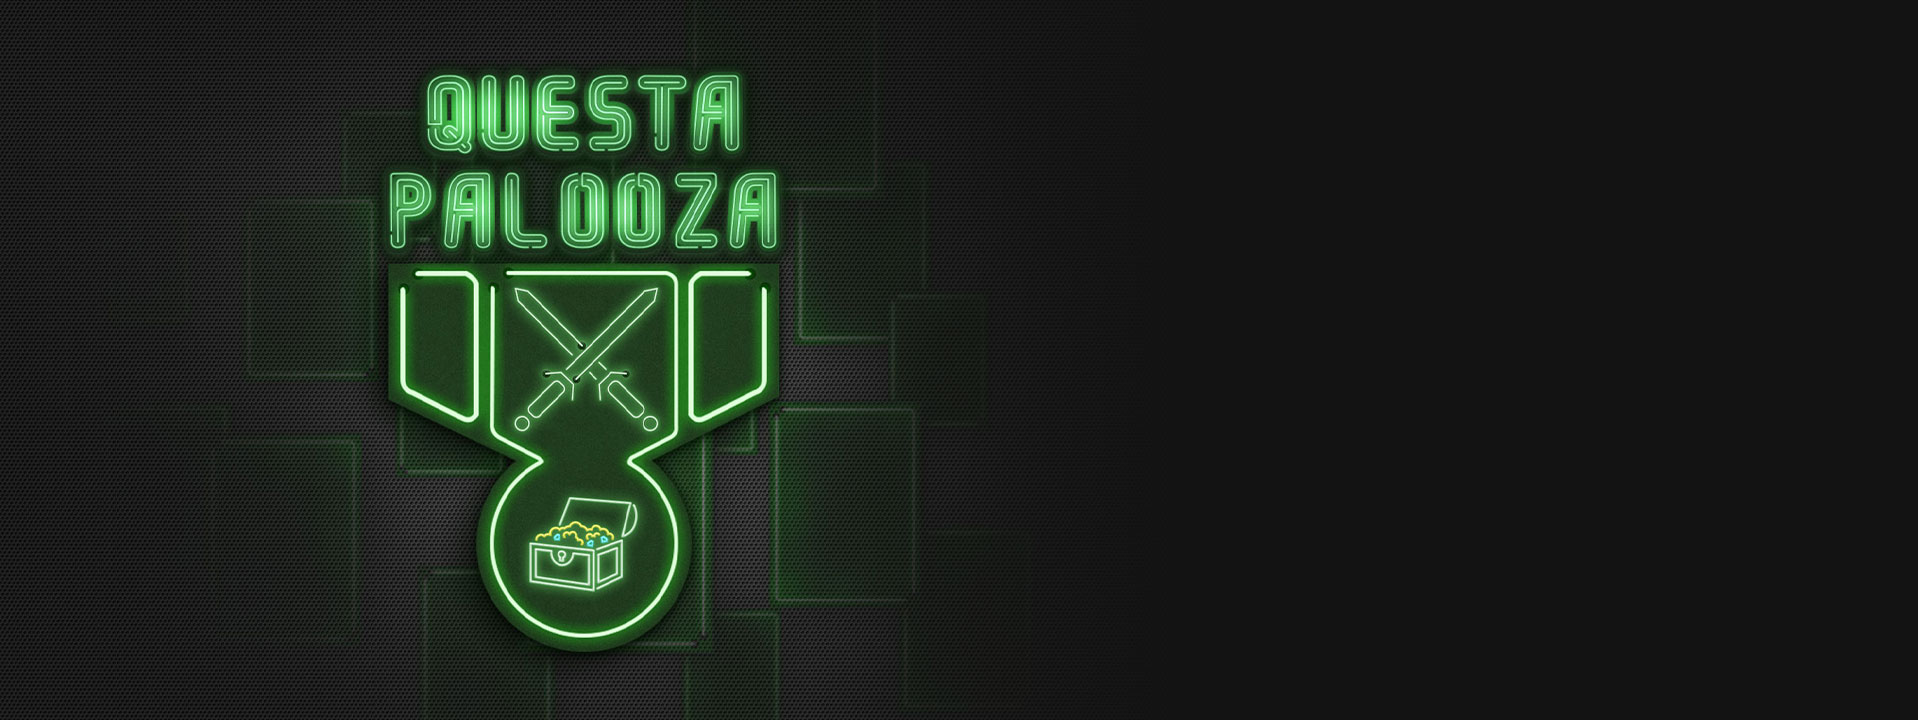 Questapalooza, green neon sign with a two swords crossed and an open treasure chest